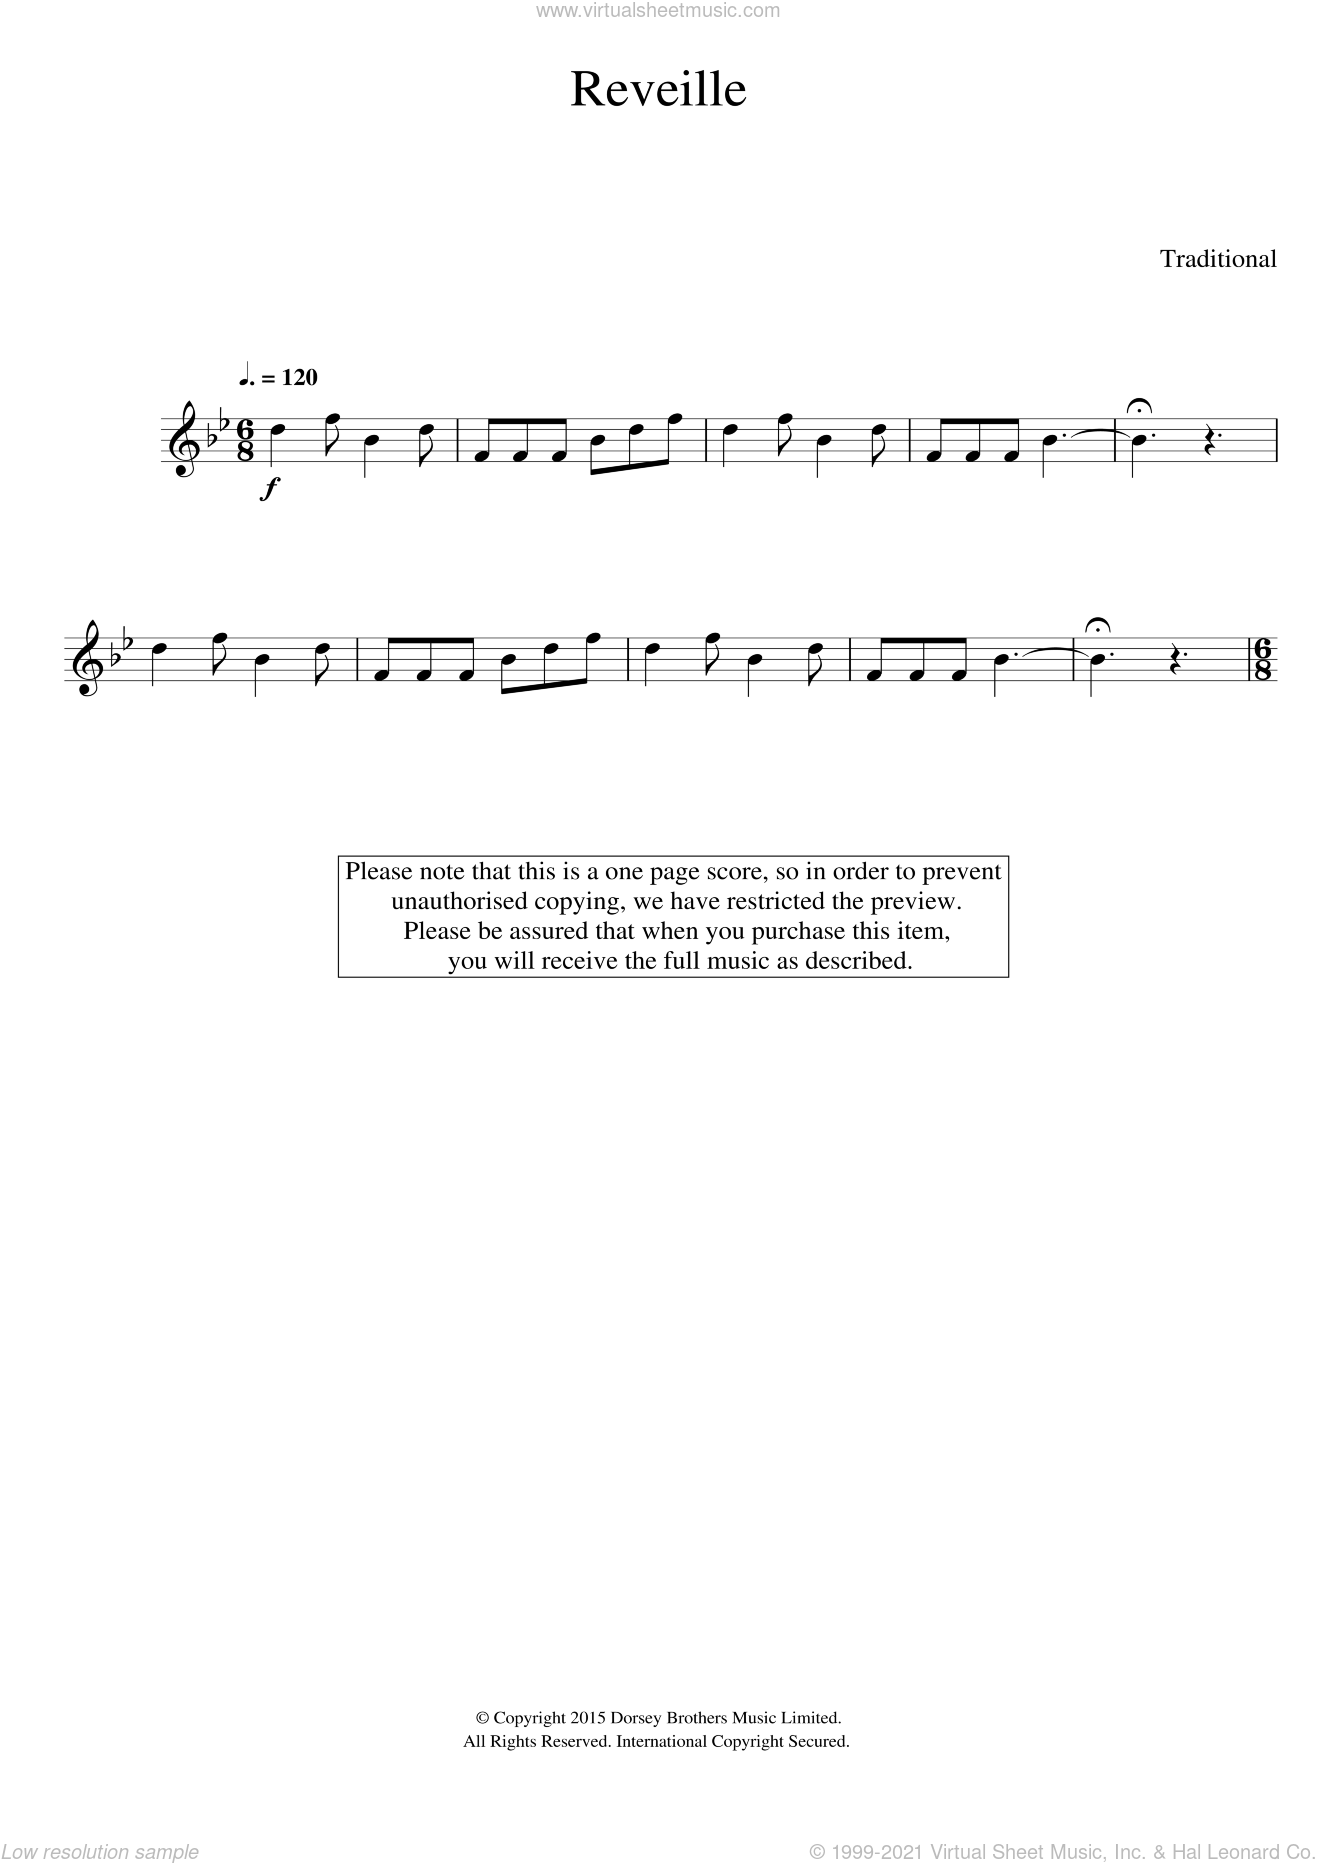 Reveille sheet music for trumpet solo, intermediate skill level